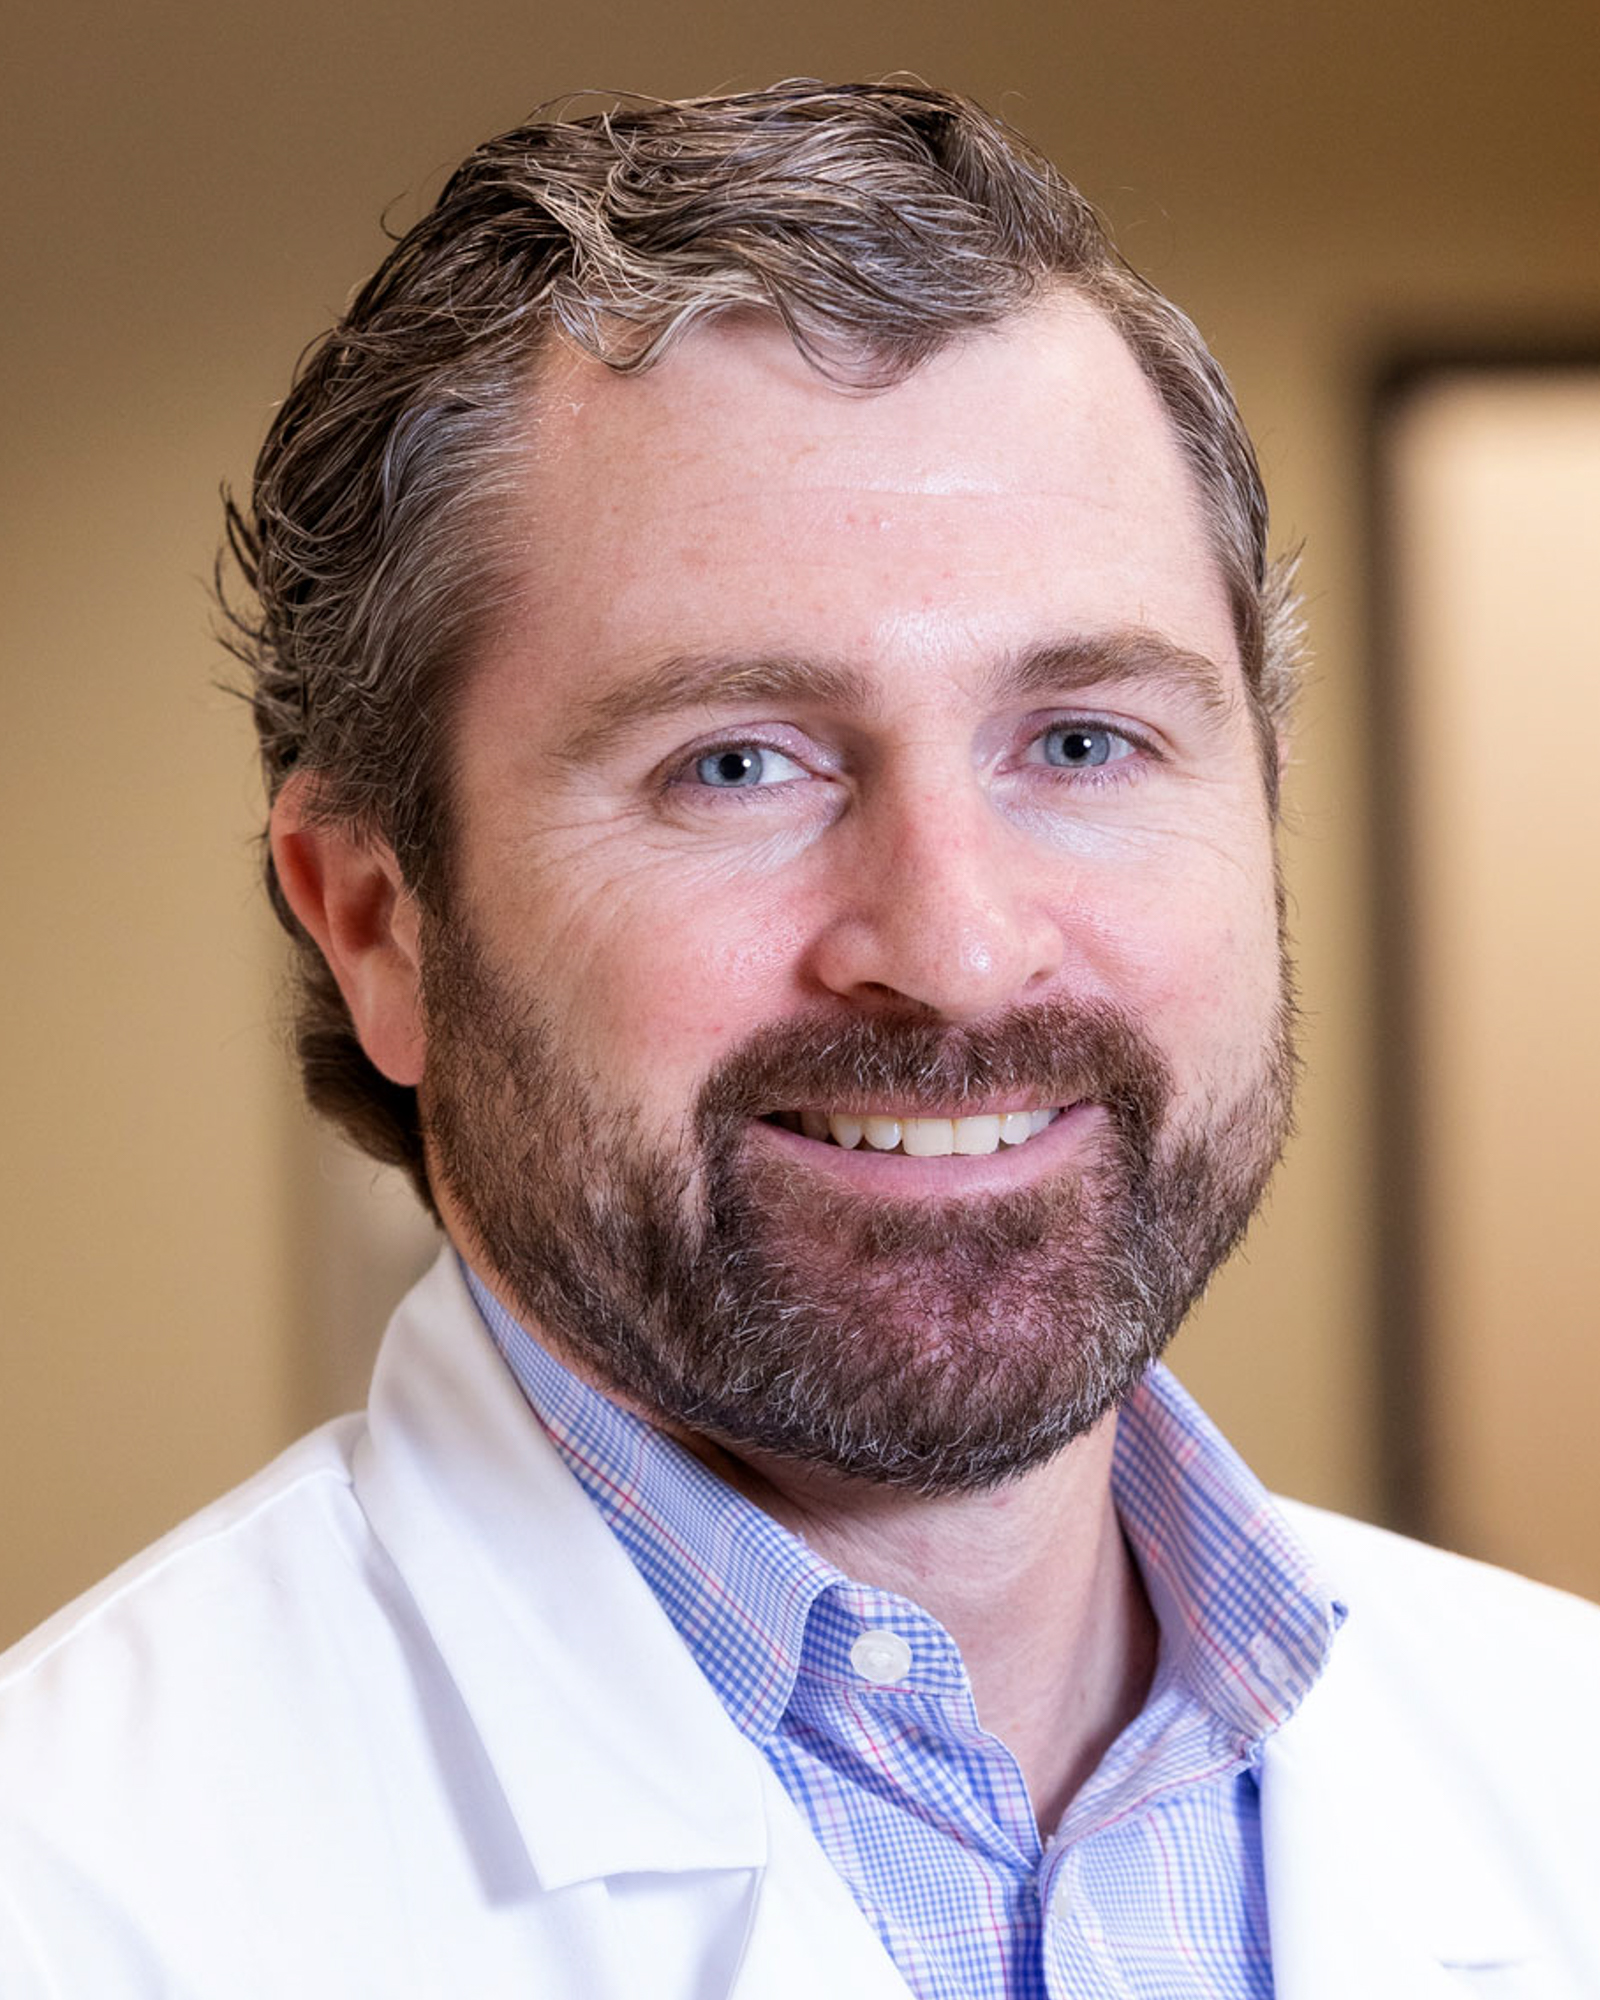 Stephen W Etheredge, M.D.